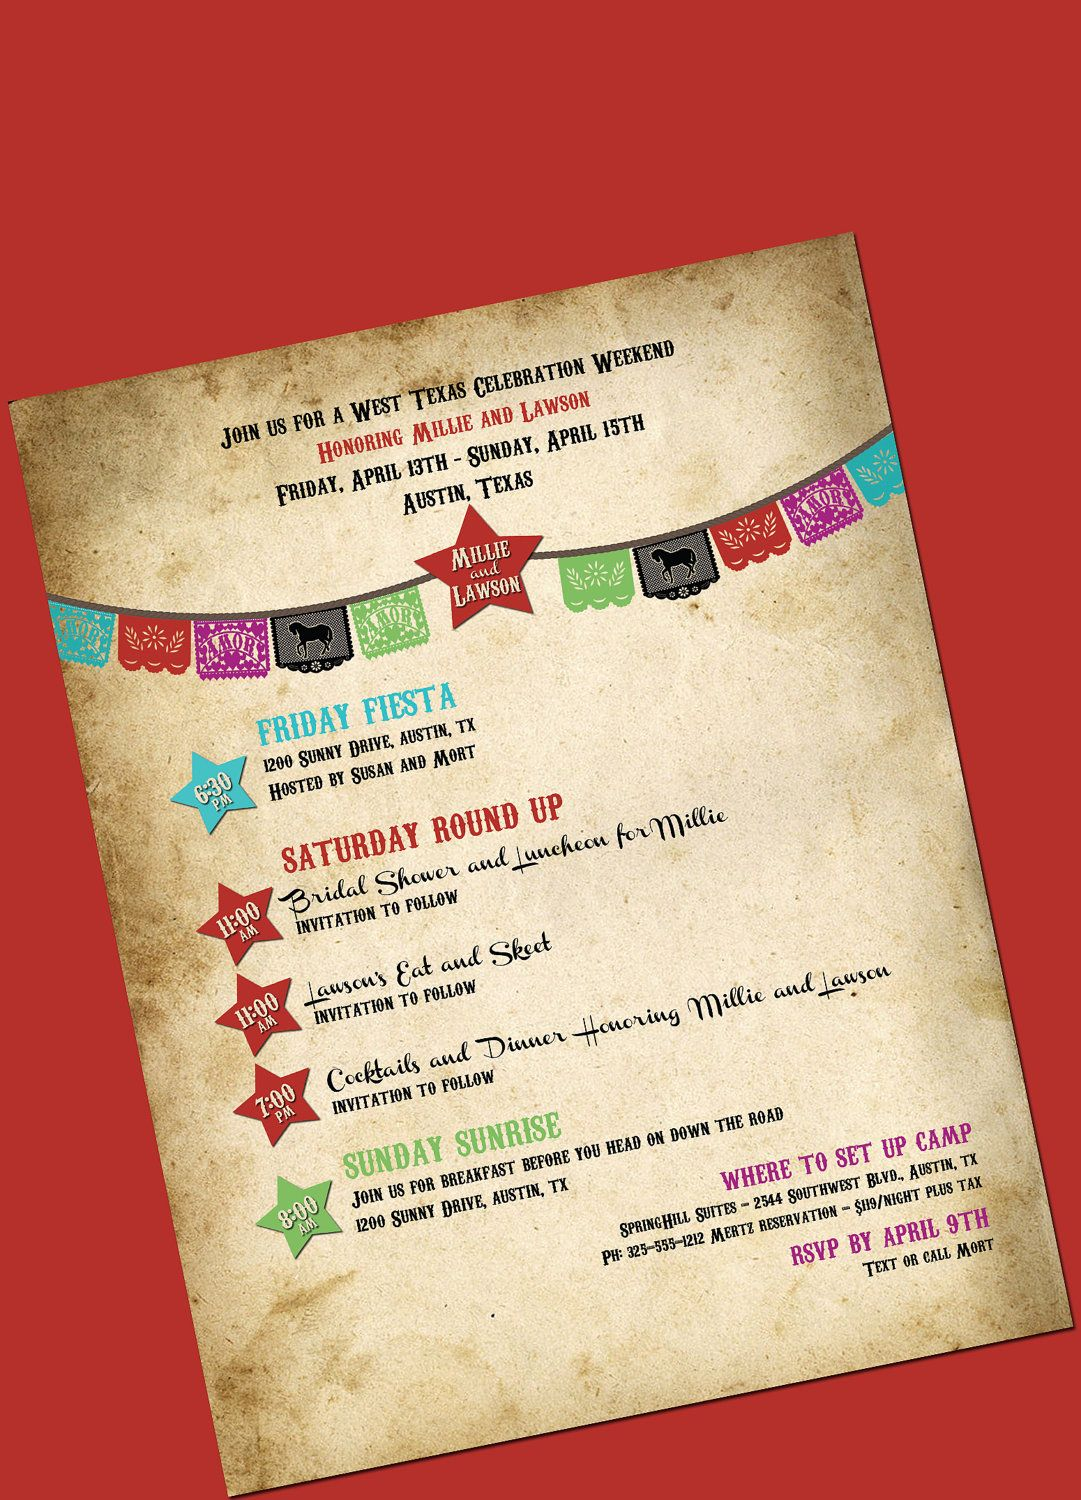 Western Wedding Weekend Itinerary Cowboy and Cowgirl - DIY printable ...